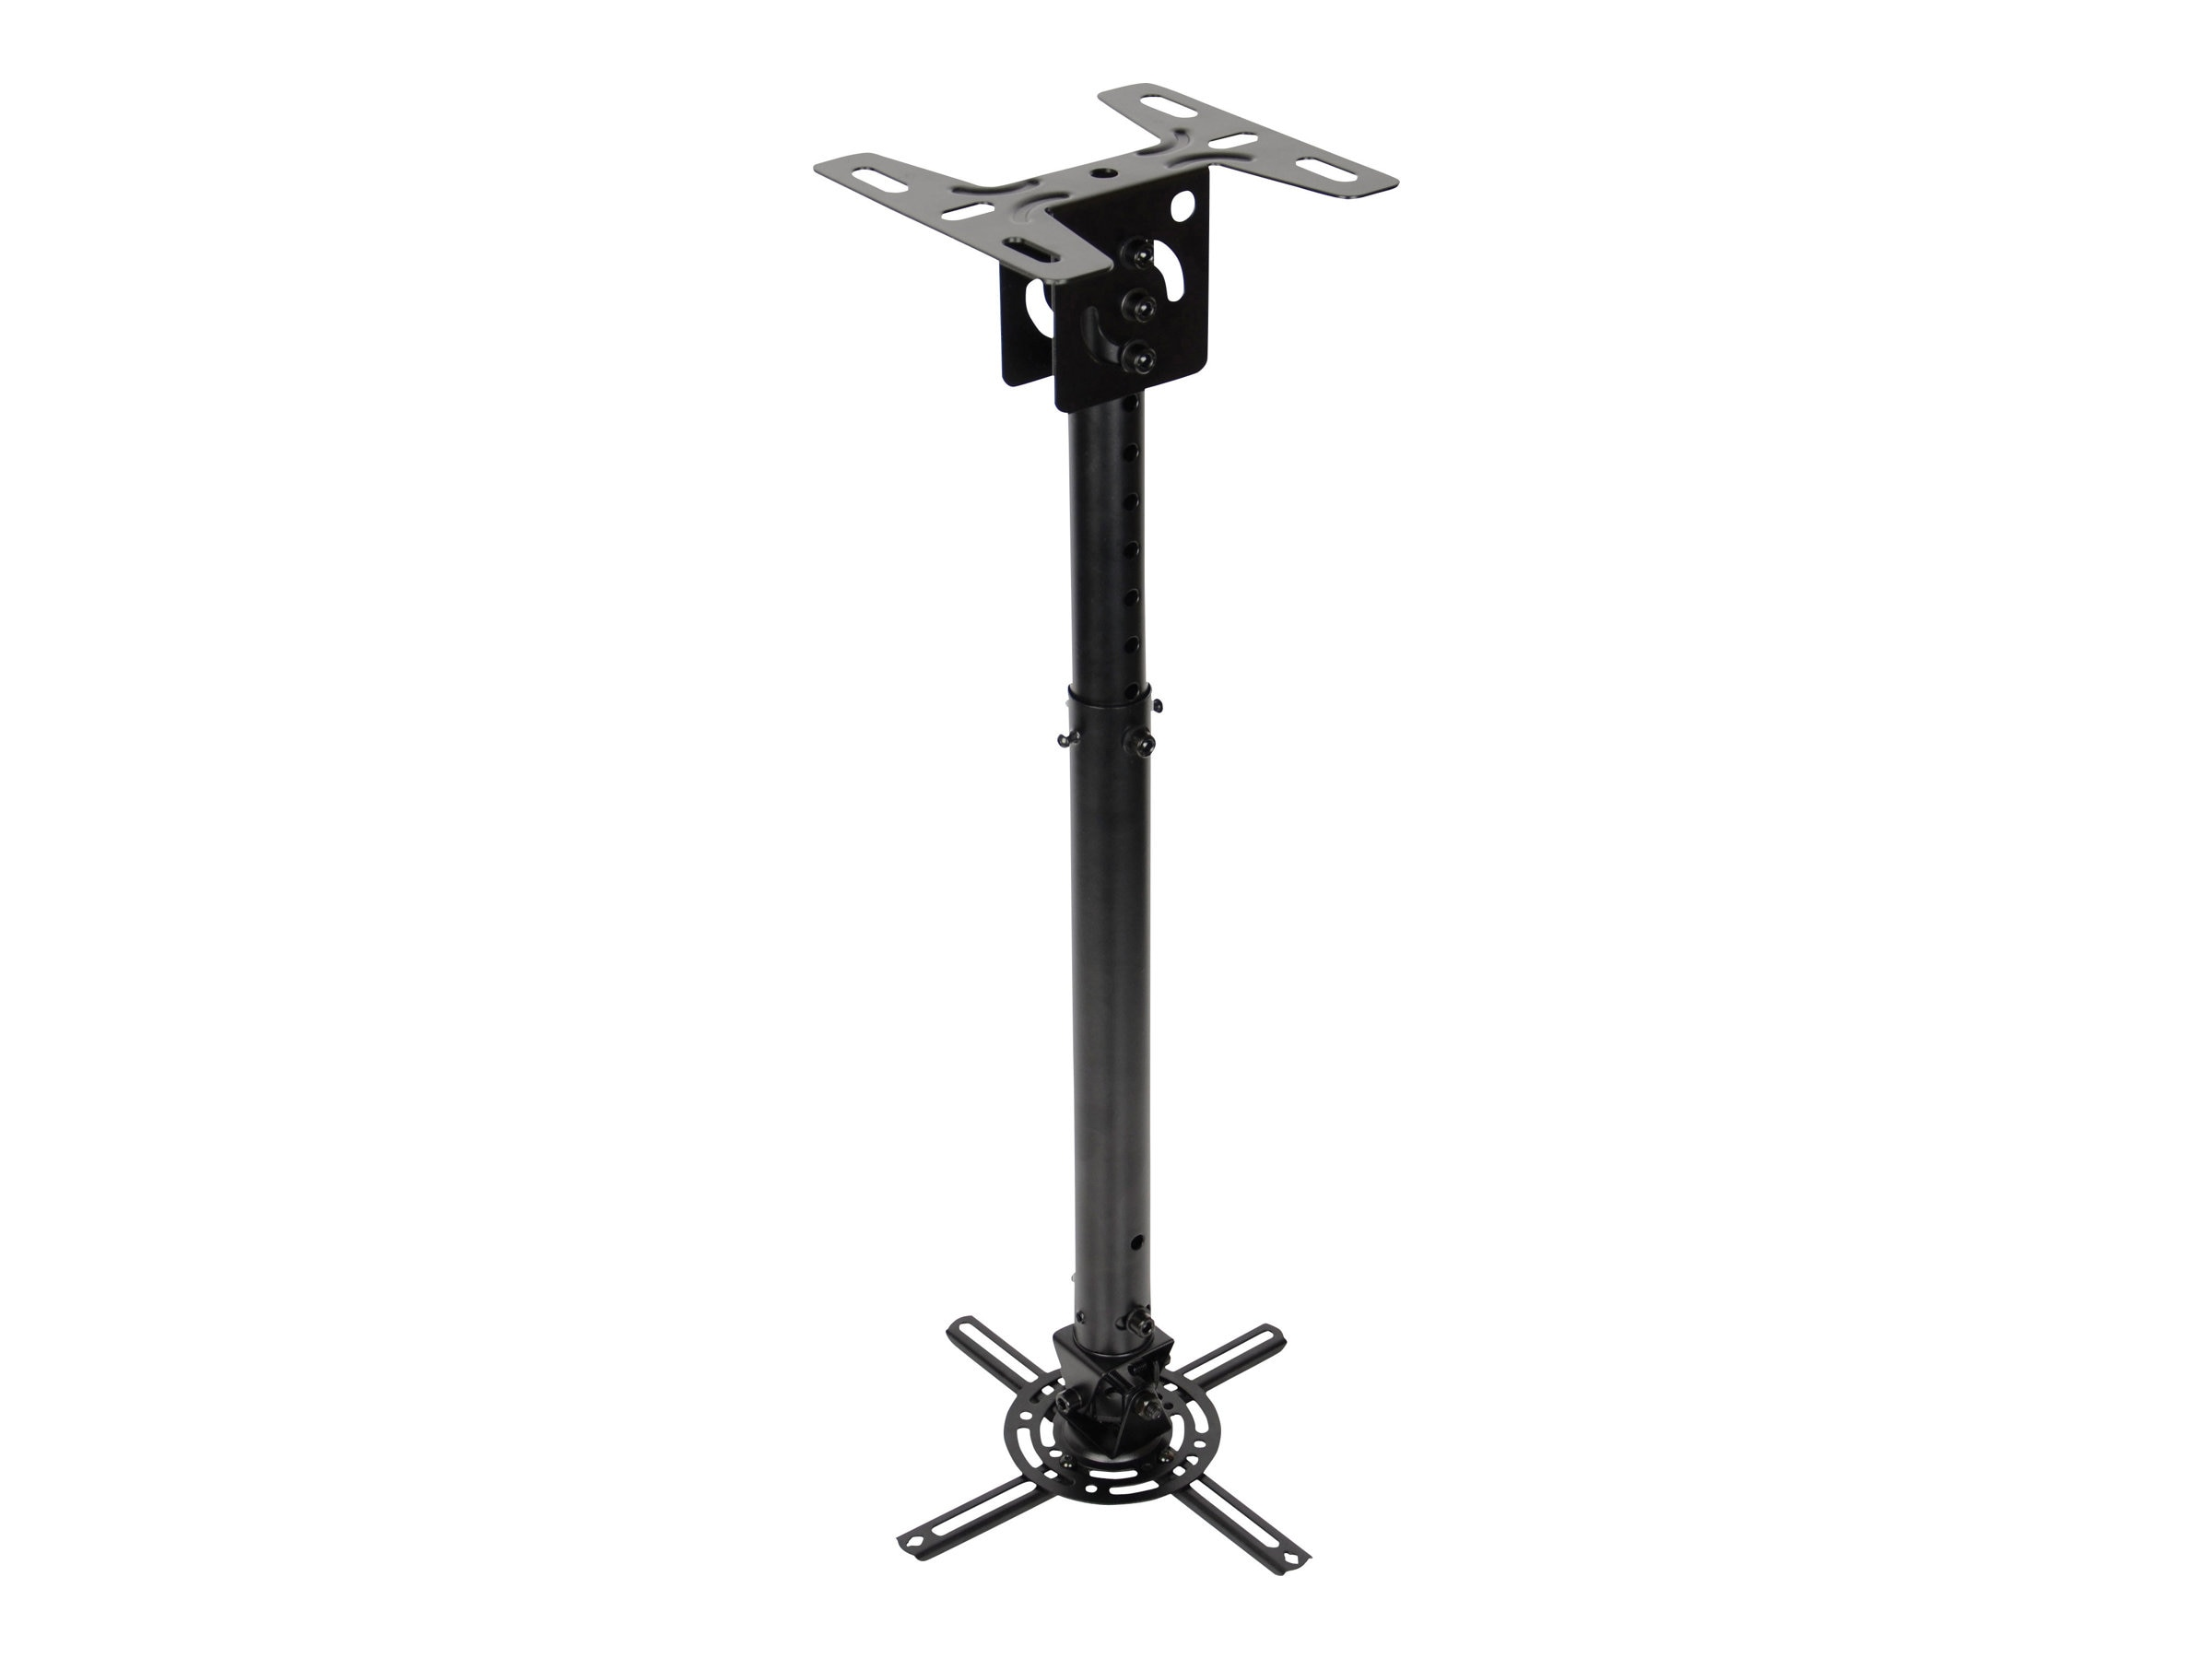 Optoma Universal Projector Pole Mount for Projectors up to 33 pounds, Black, OCM815B, 19801810, Stands & Mounts - AV